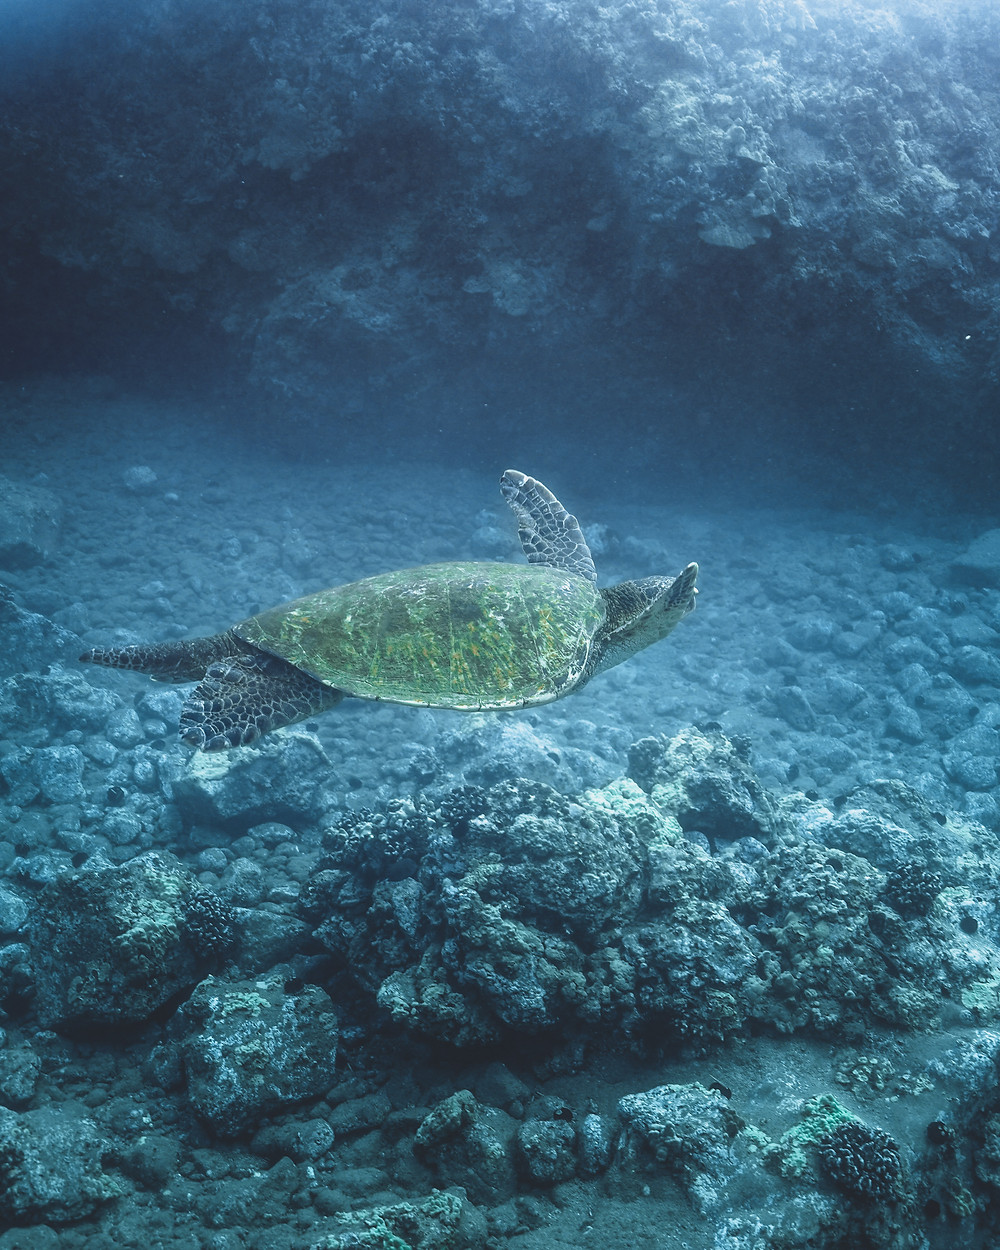 Underwater photo of a sea turtle swimming in Hawaii